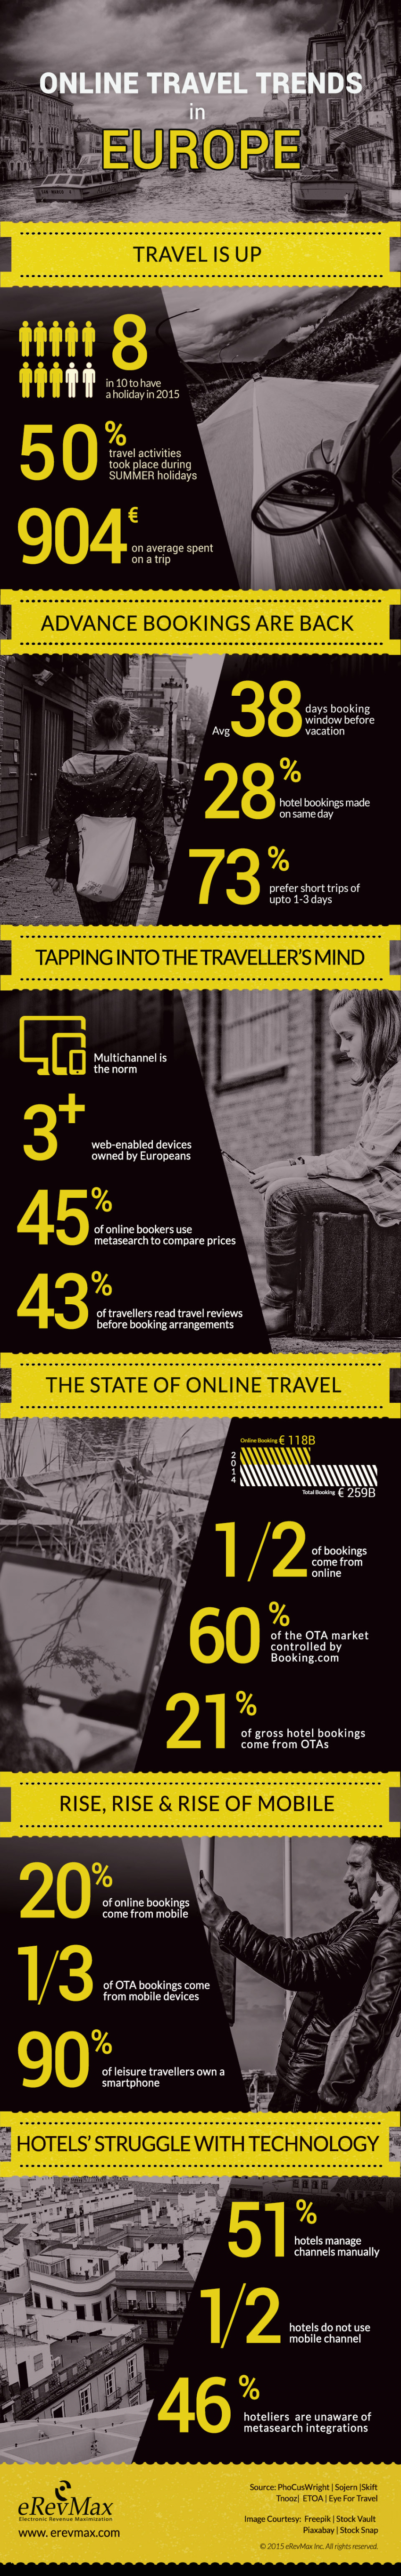 Europe: 50% of all hotel bookings come from online channels